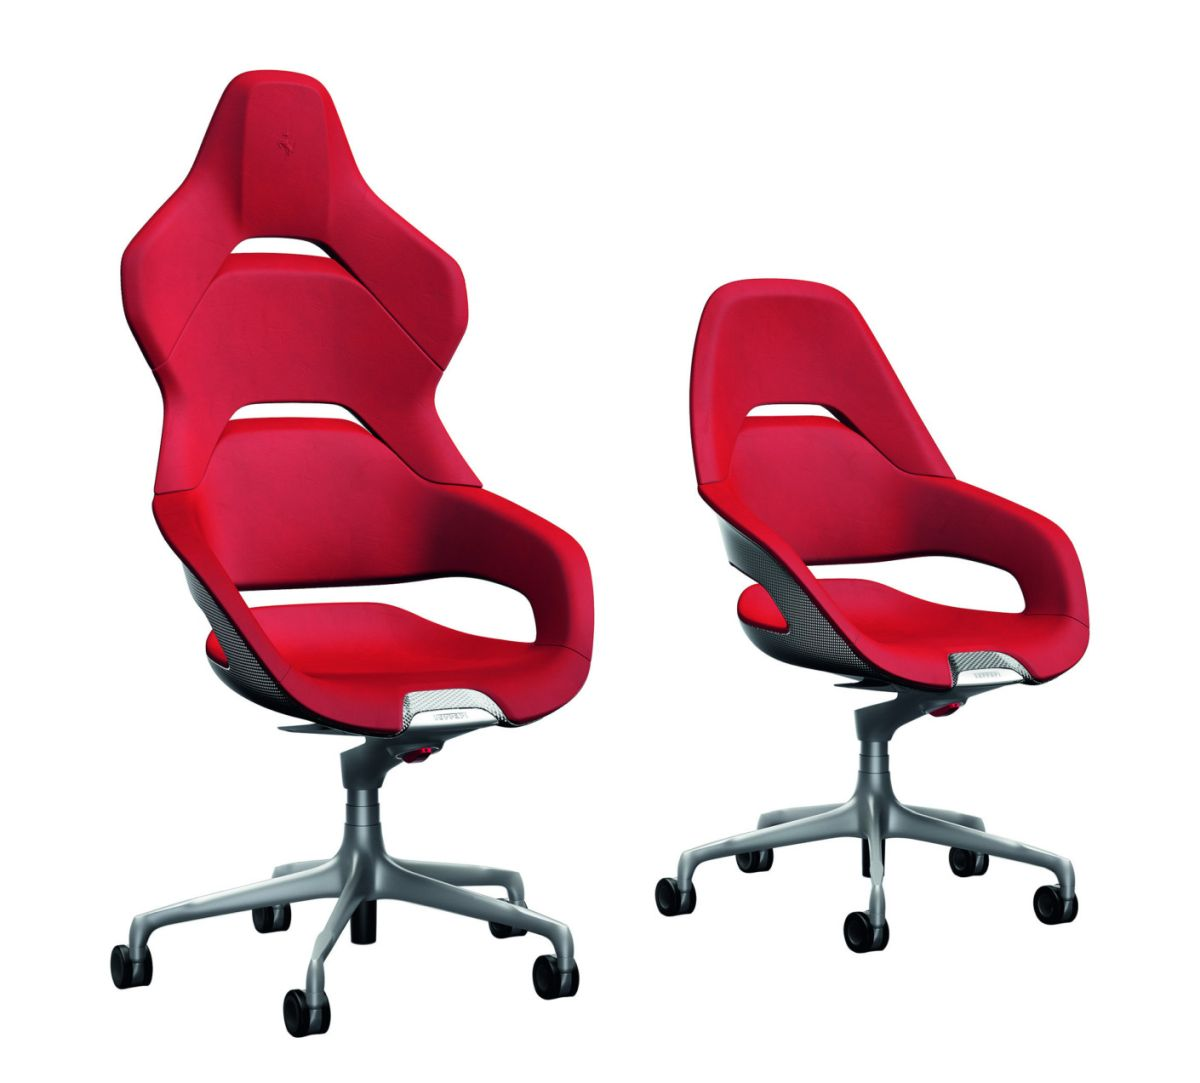 chaplinsfurniture_1830480_cockpitofficechair.jpg